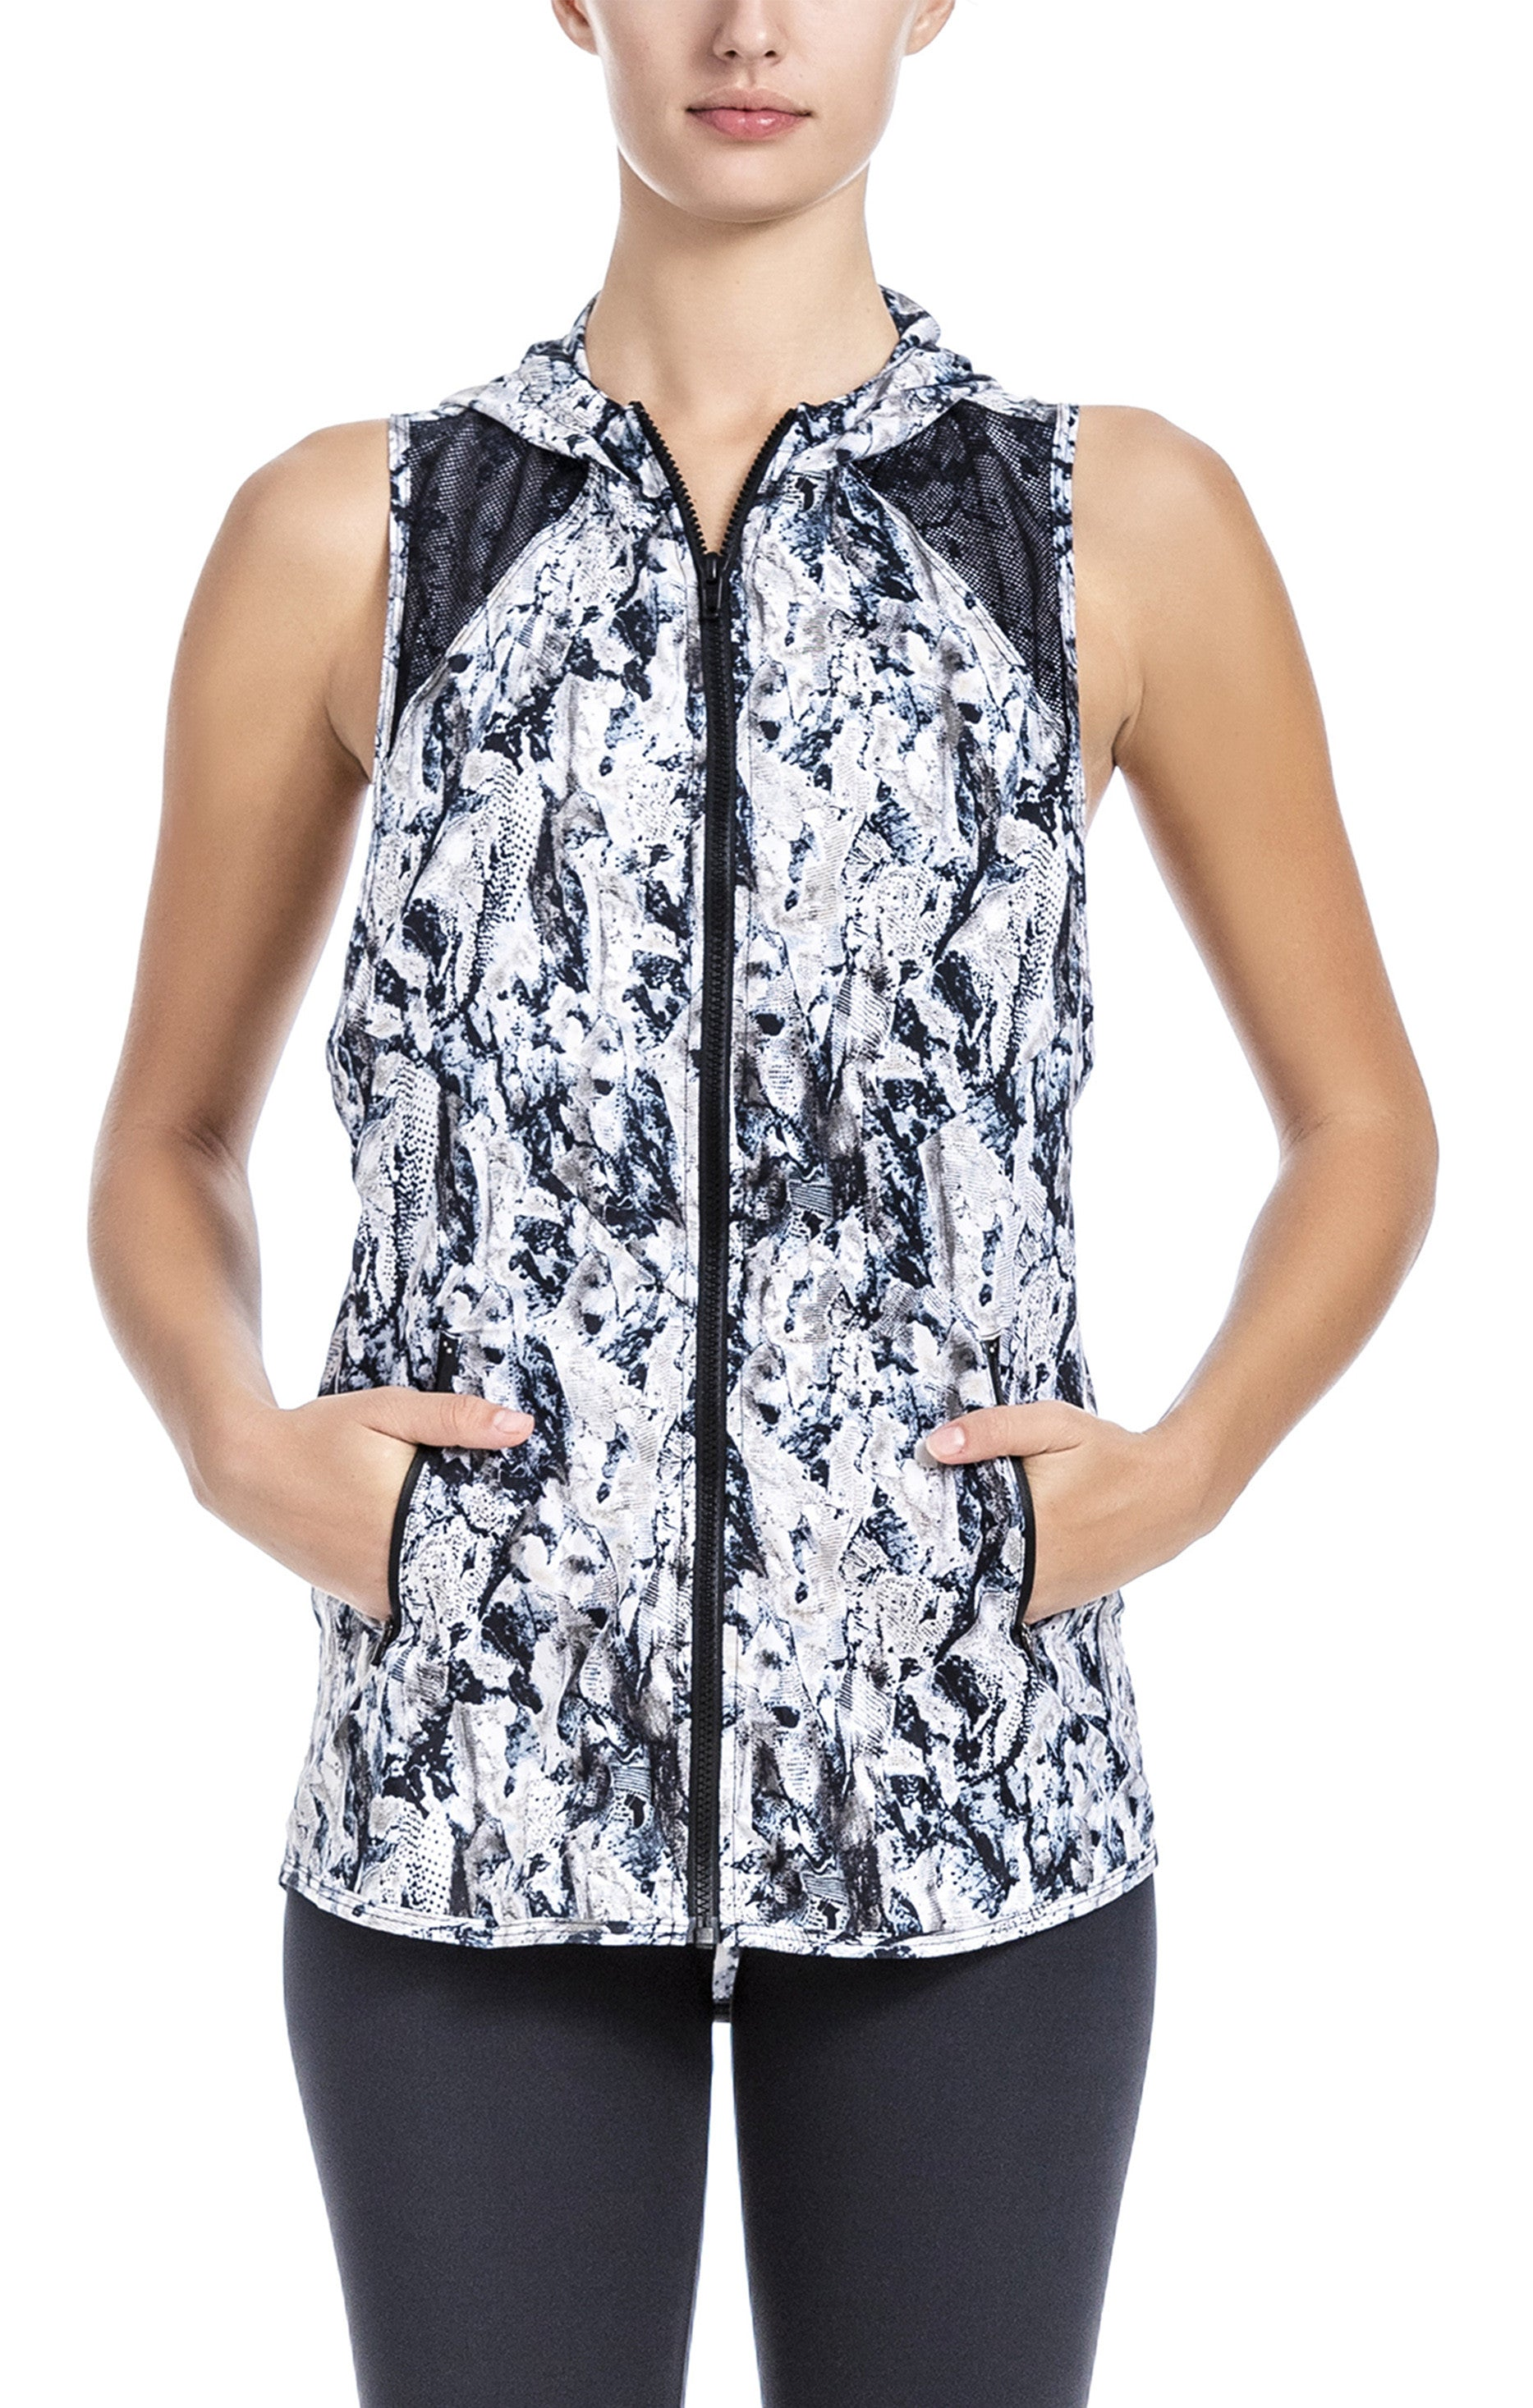 Grey Tone Brush Stroke Colors-Lightweight sleeveless jacket